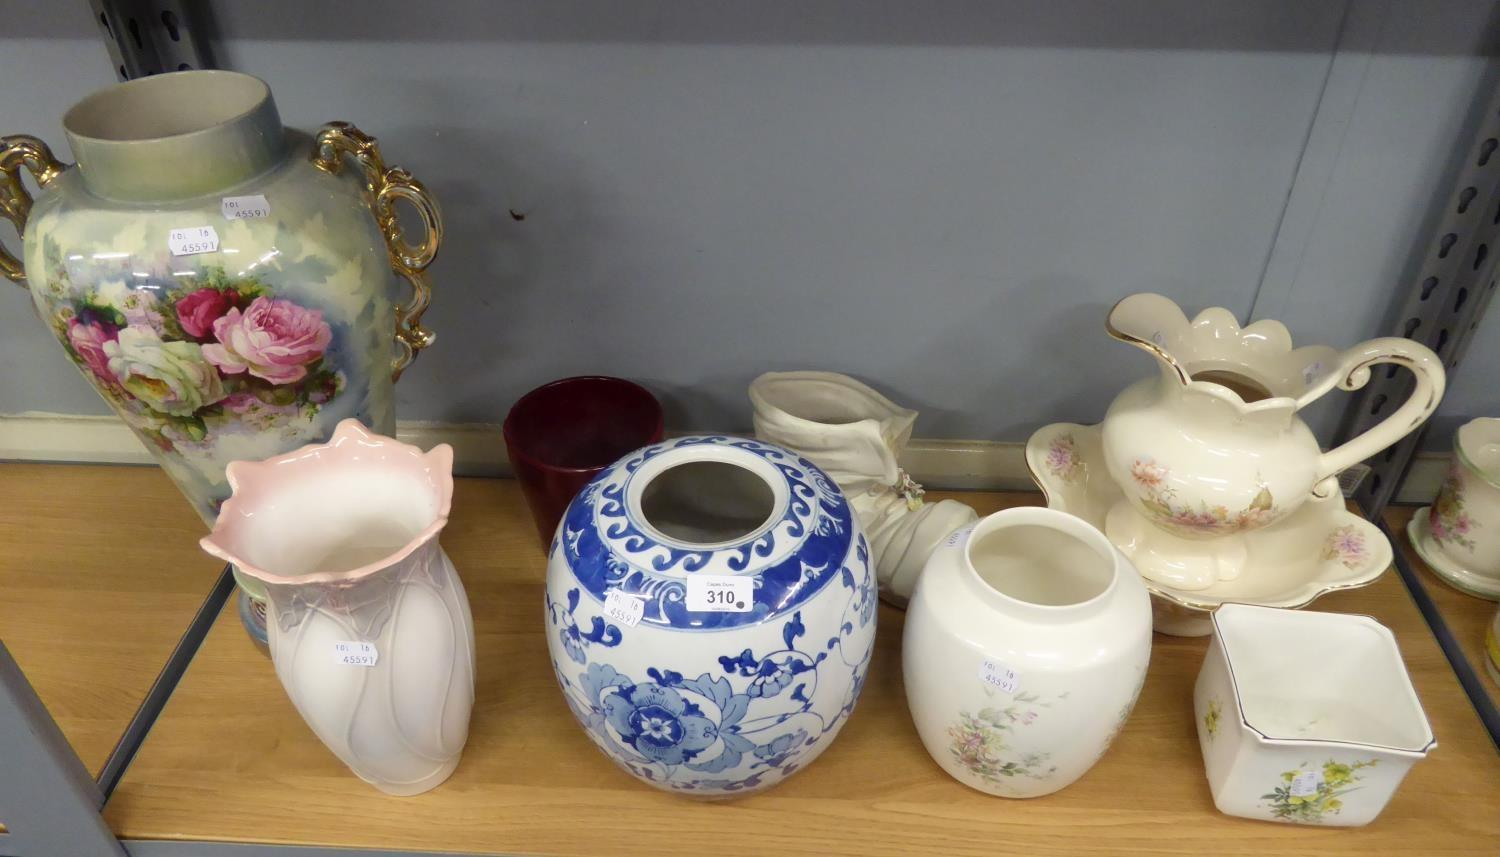 Lot 340 - LARGE CERAMIC TWO HANDLED VASE WITH FLORAL DECORATION, BLUE AND WHITE VASE, TOILET BOWL AND JUG